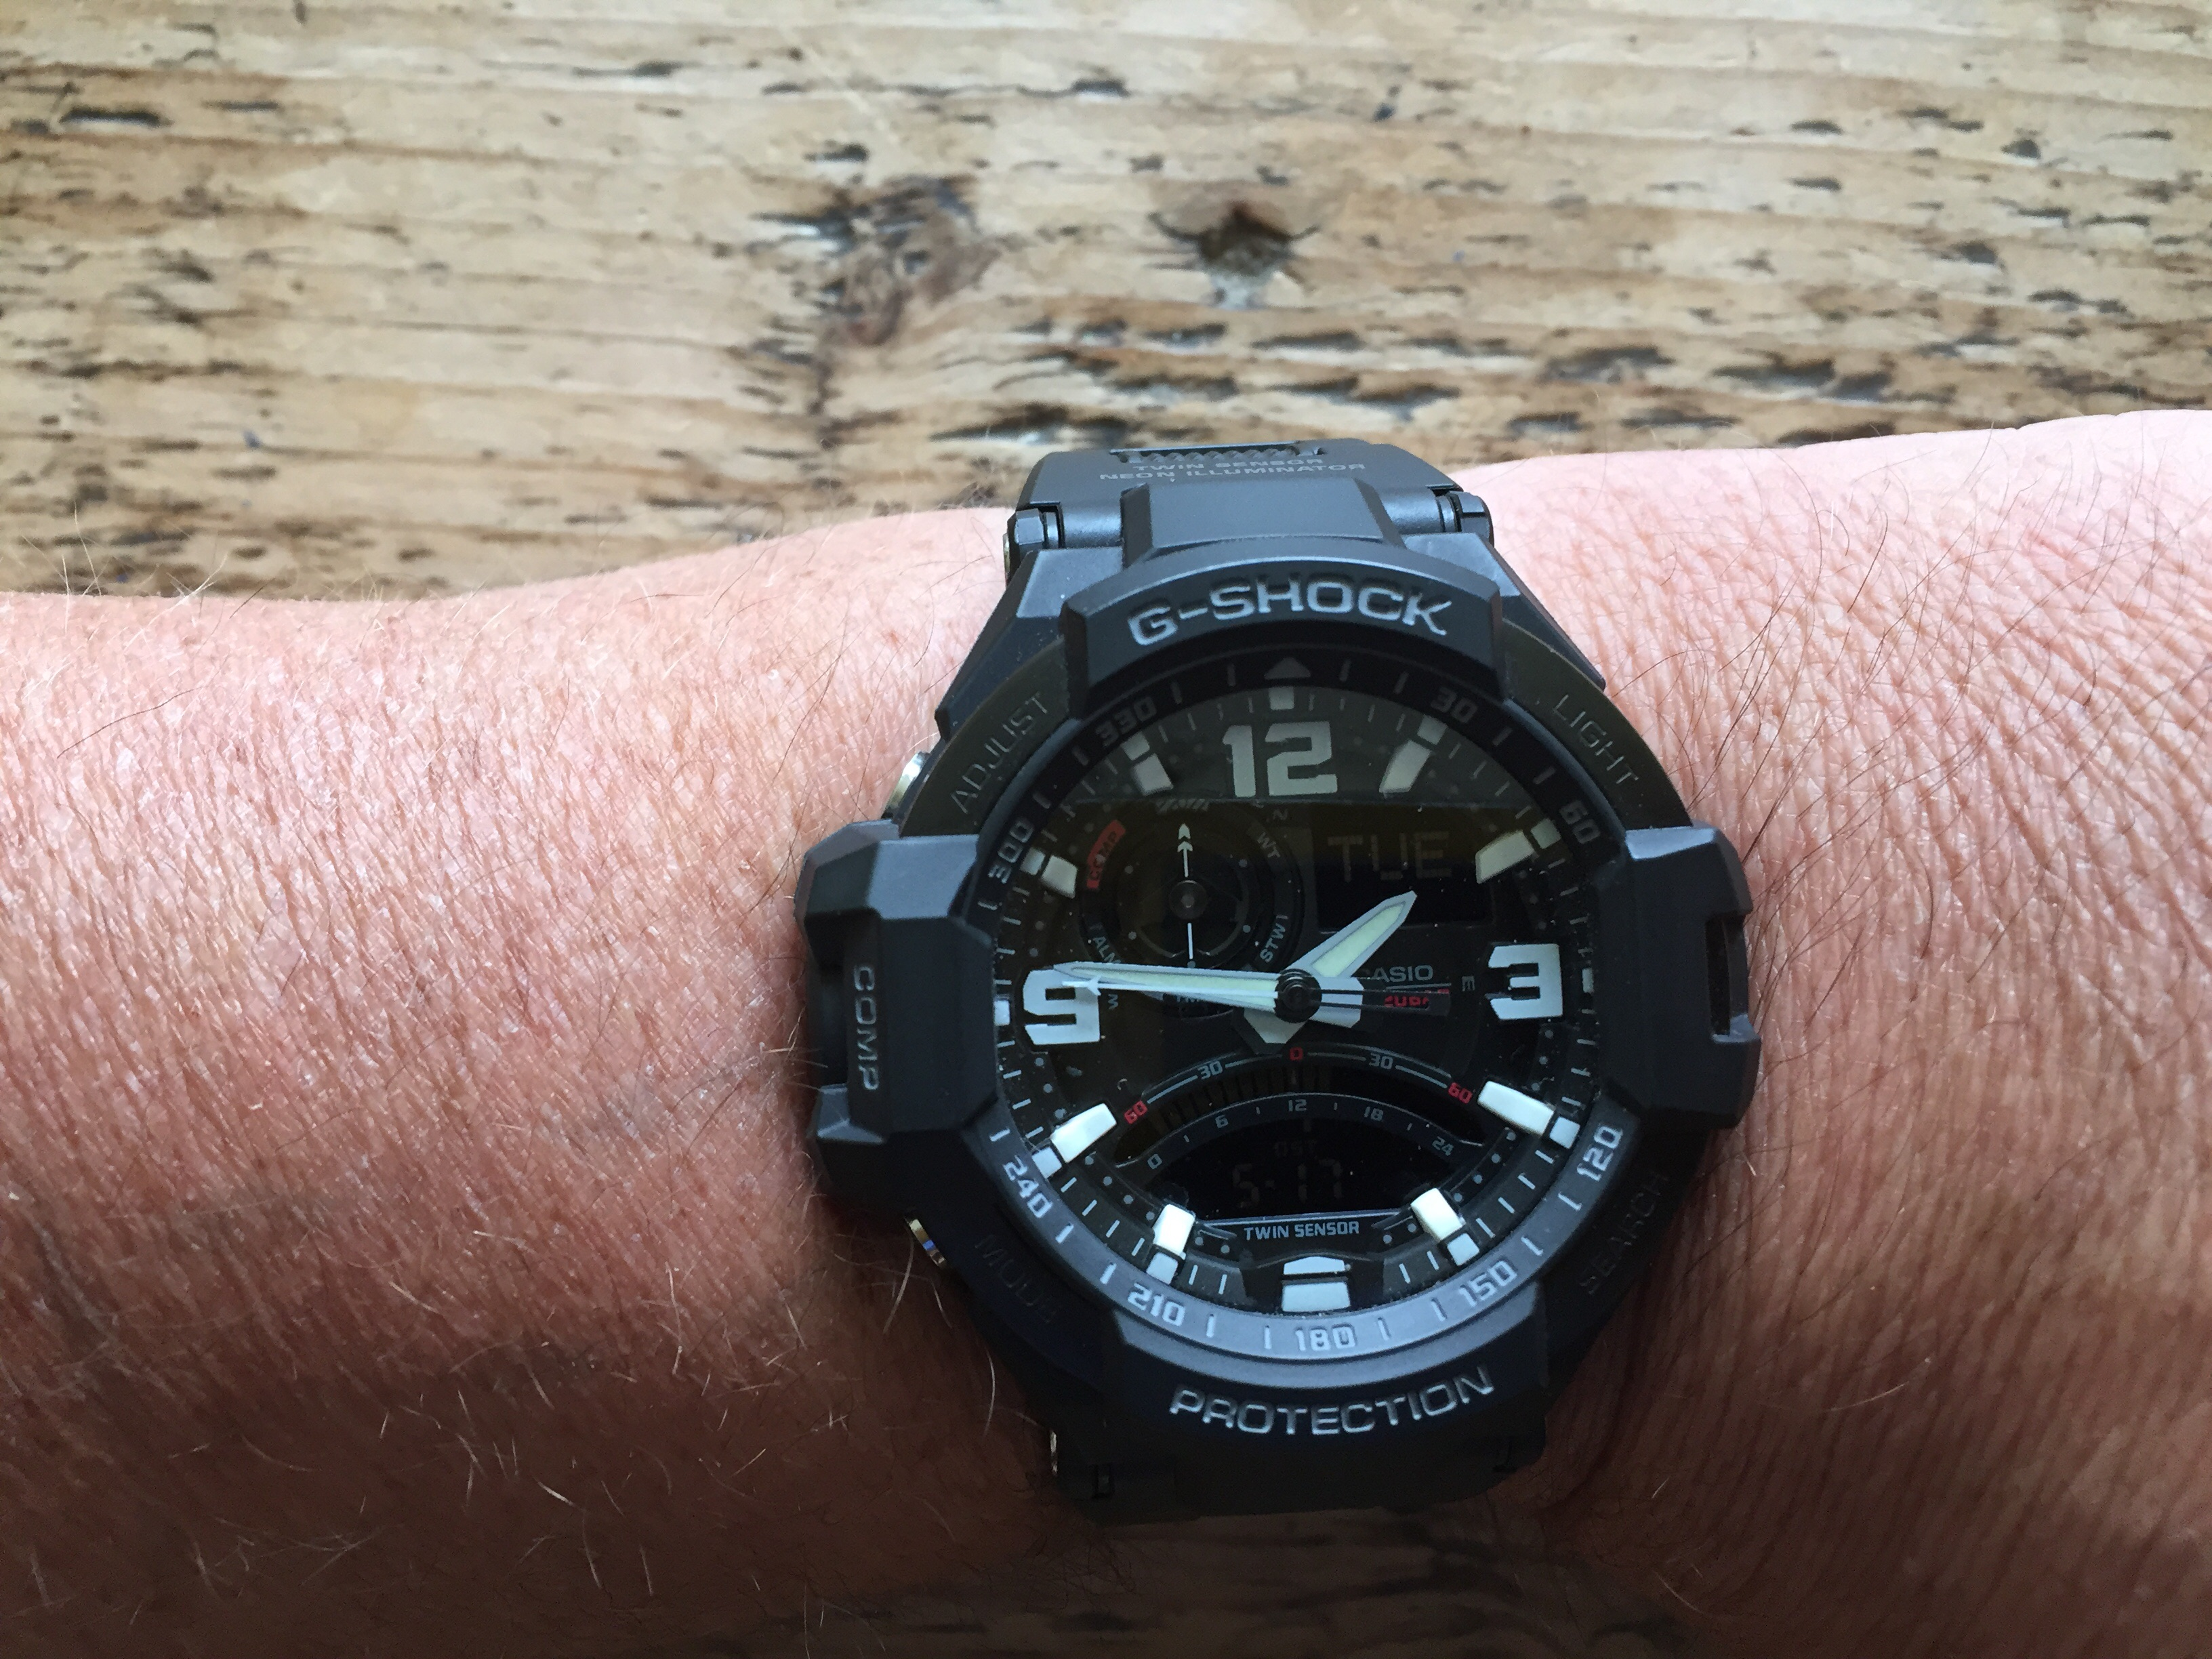 1f5962b2e5a2 This is a upgrade from a cheaper g shock and well worth the extra money!  Great watch plus great service from watch shop at a price couldnt find any  ...